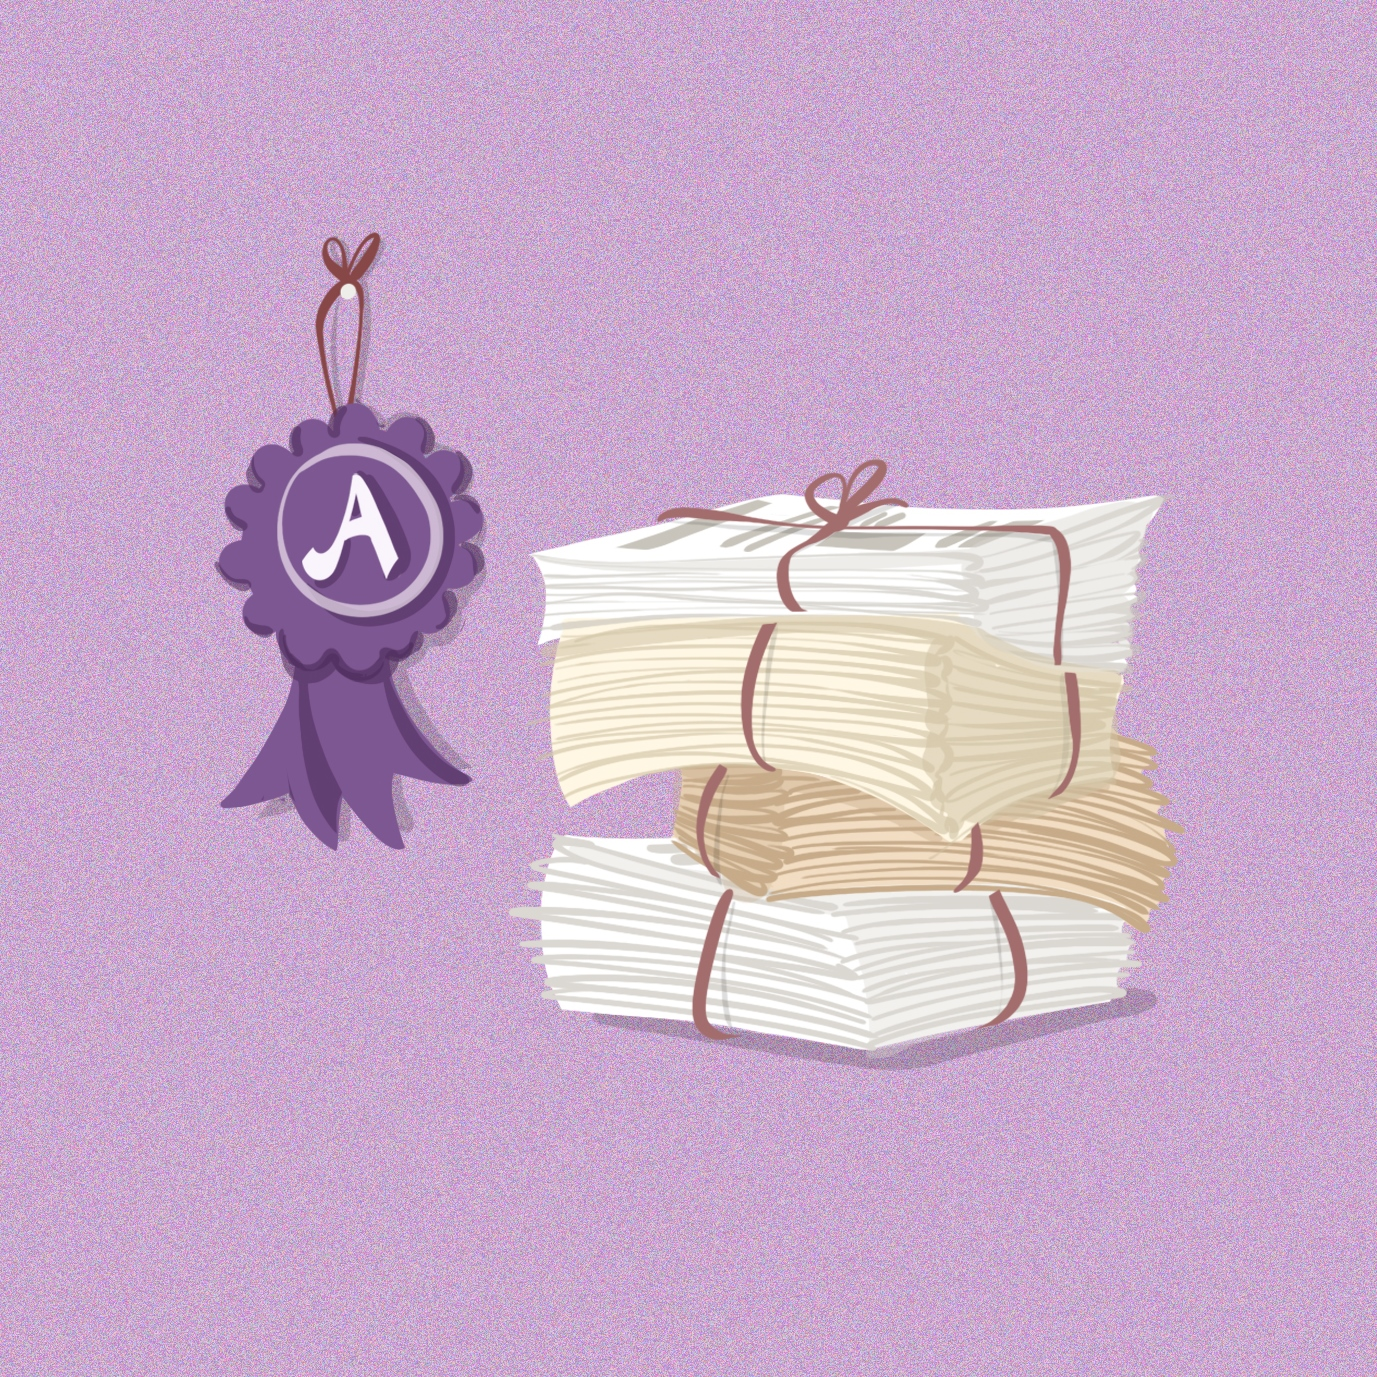 Illustration of a purple rosette and a pile of newspapers. The rosette has an 'A' on it to indicate an A grade. Illustration by Gaia Leandri.